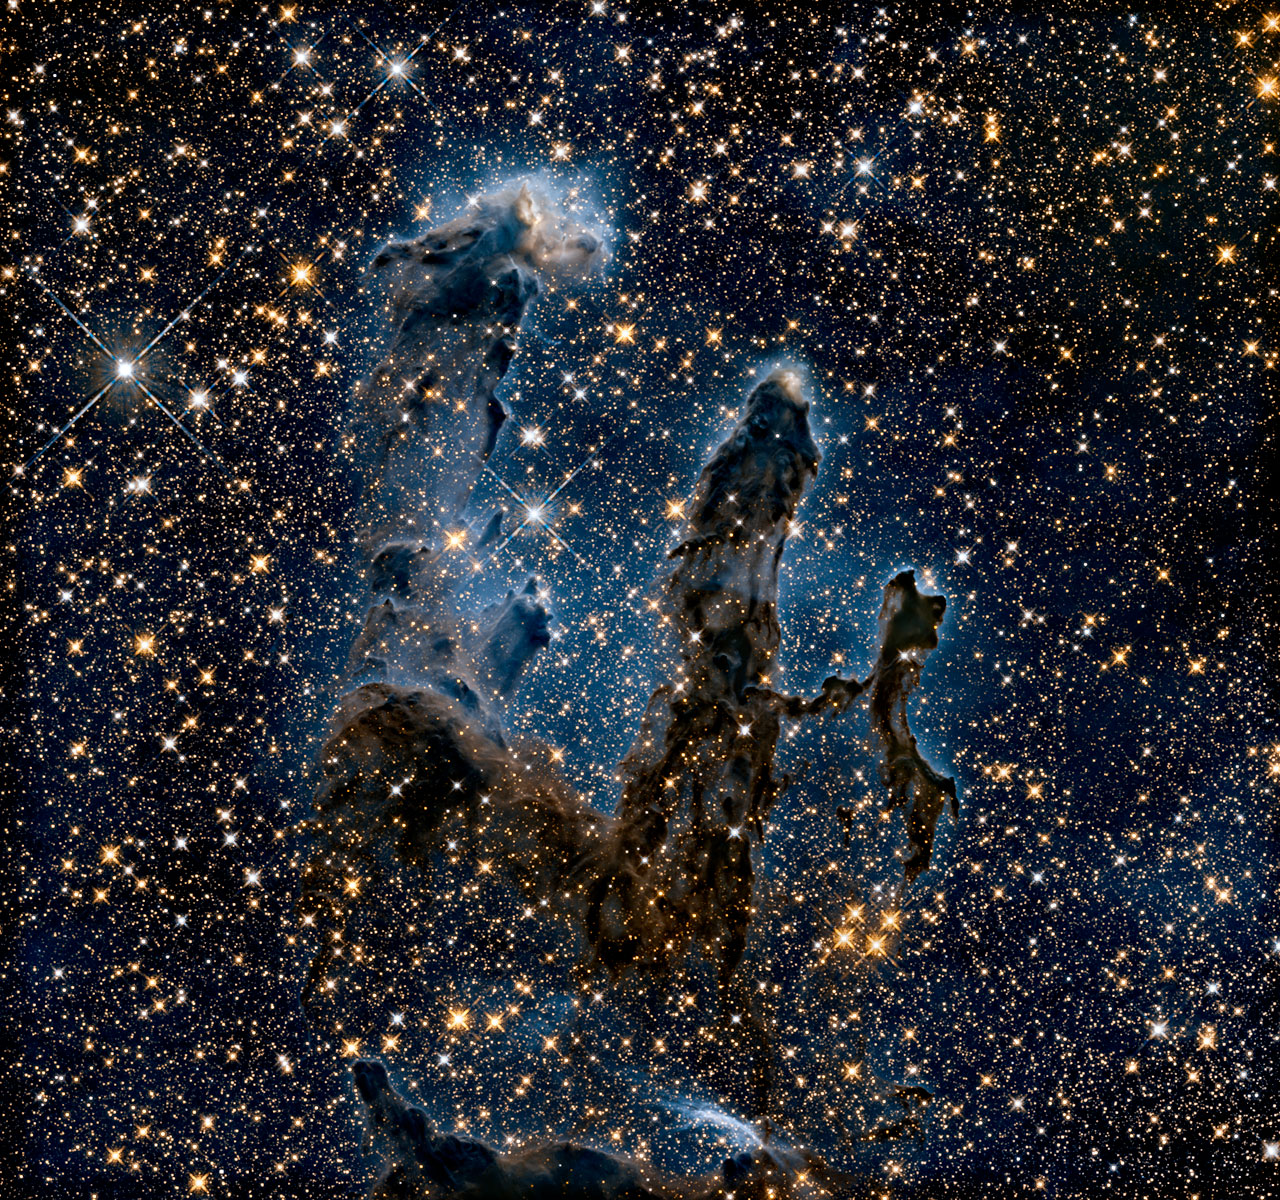 NASA Released Amazing Infrared View Of Pillars Of Creation